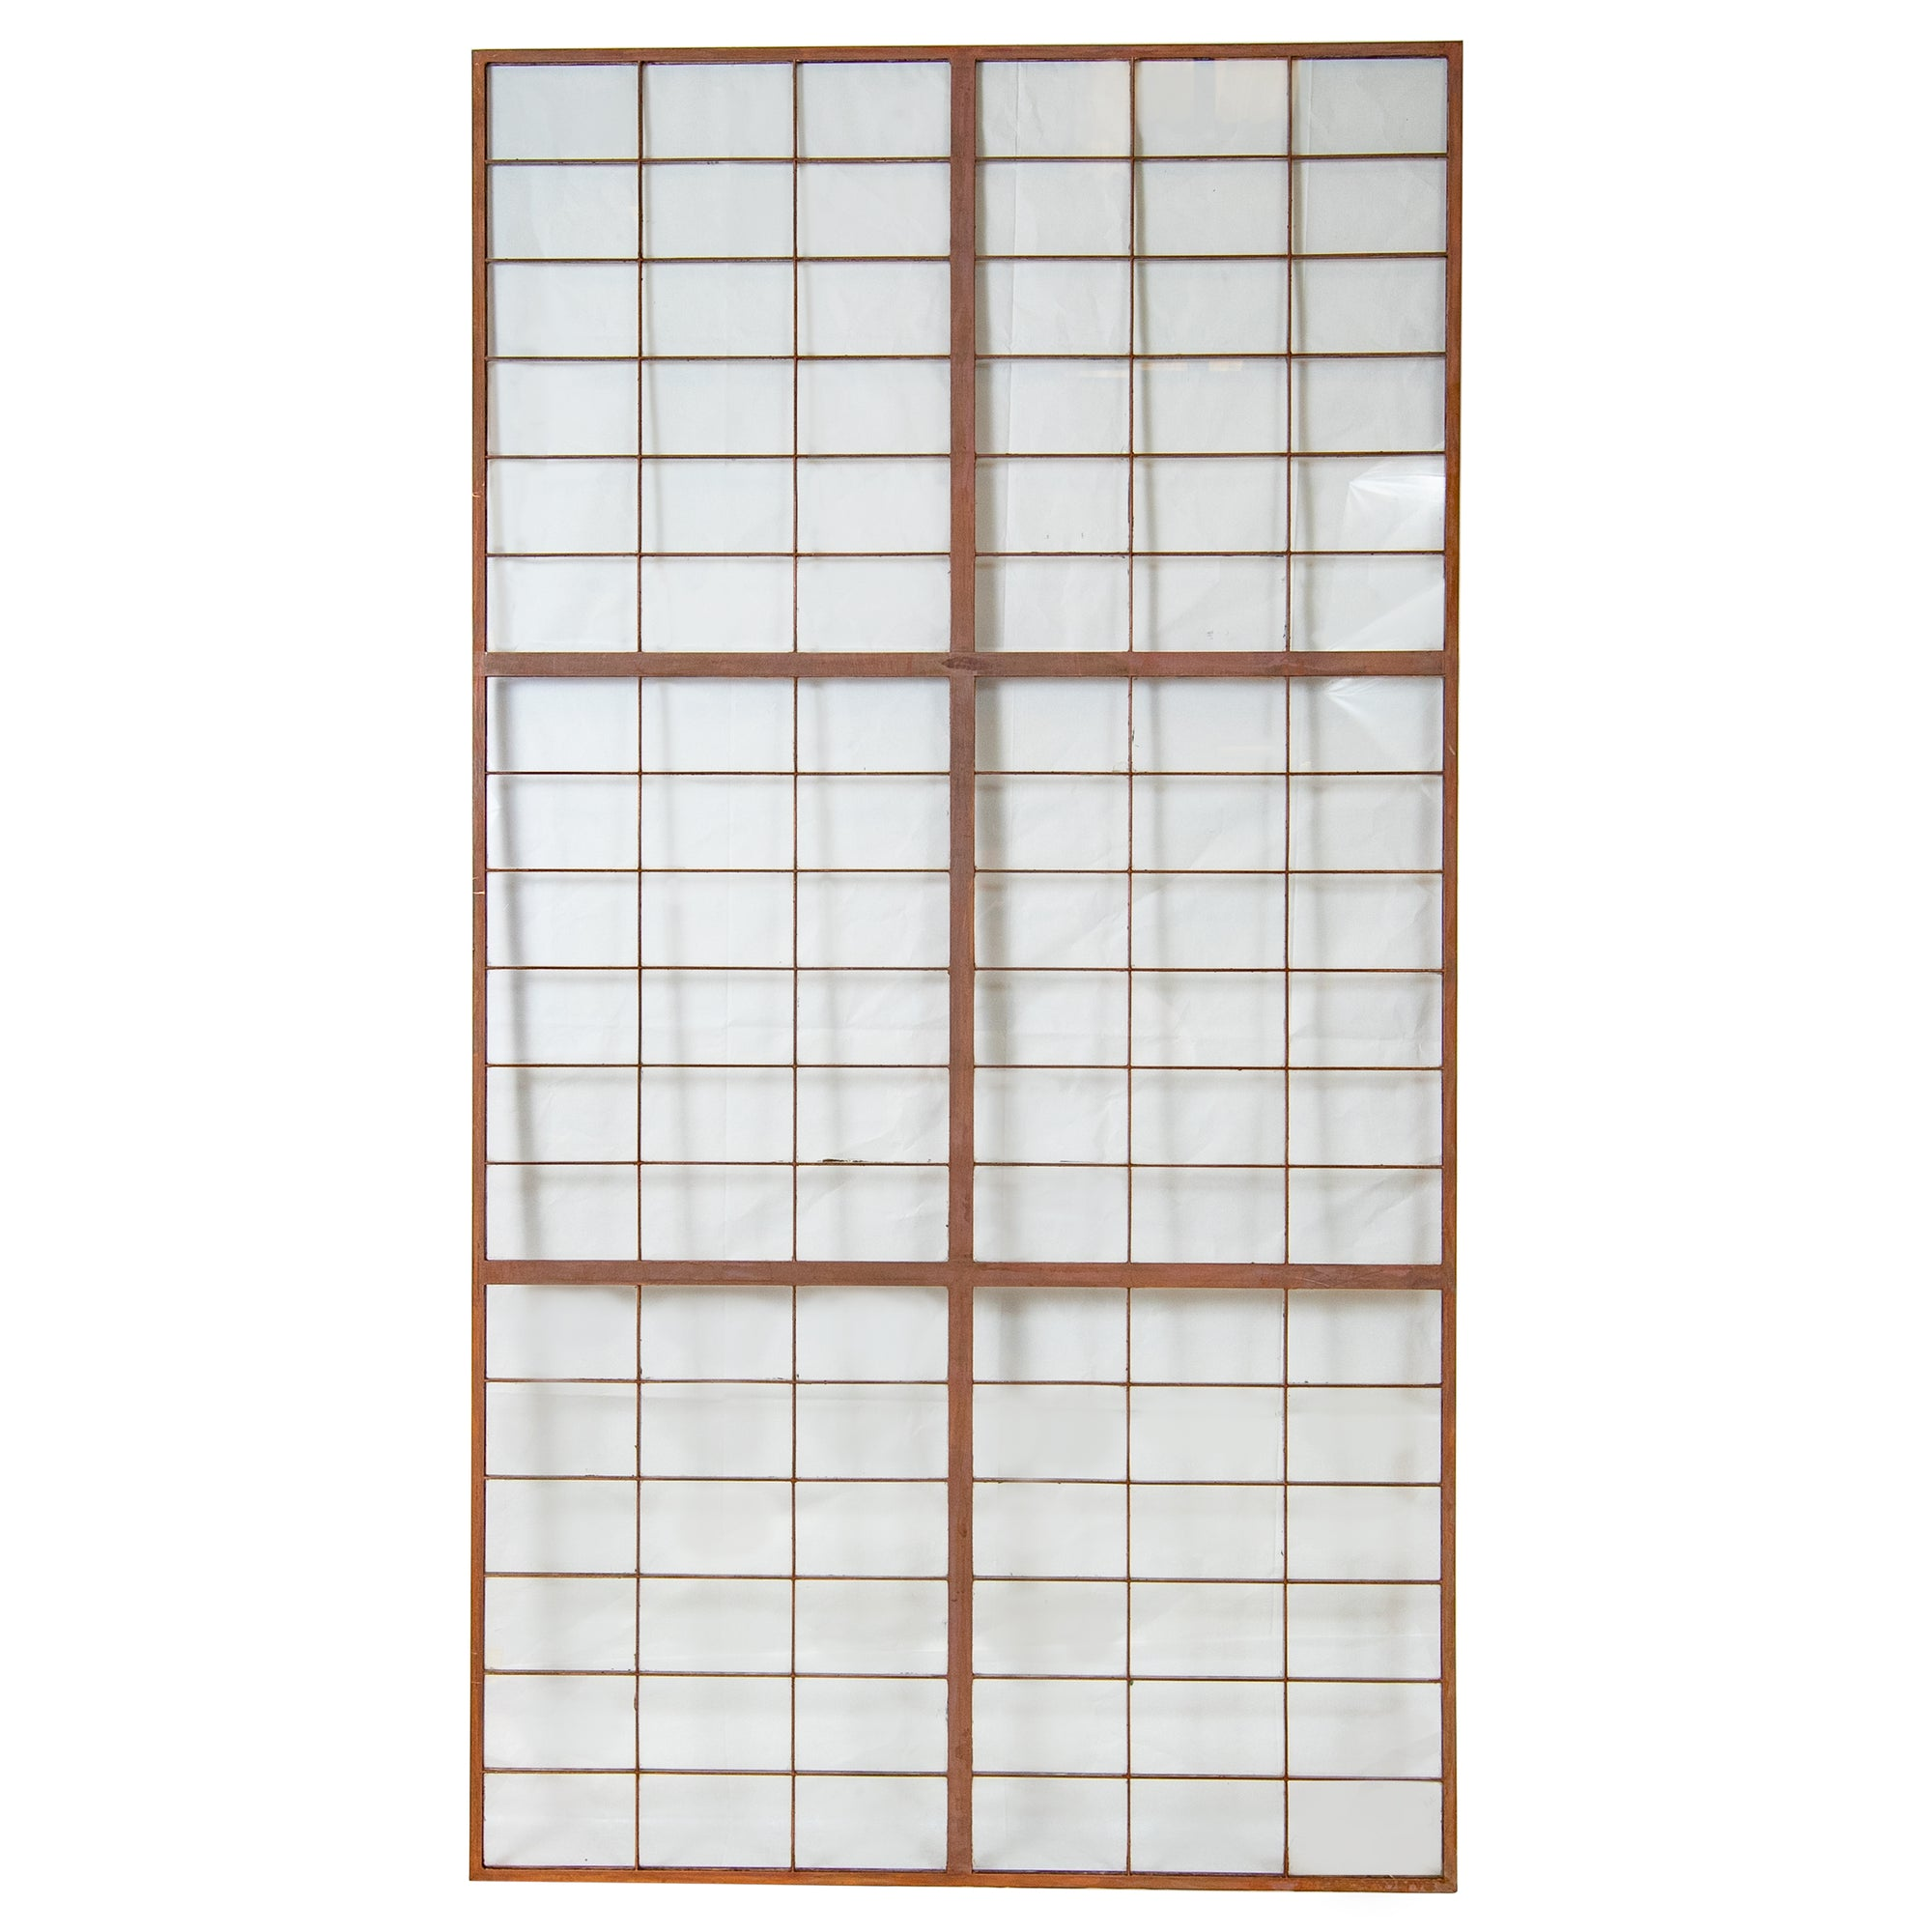 Reclaimed Glass Copper light Panels 78.5cm X 148cm - architectural-forum